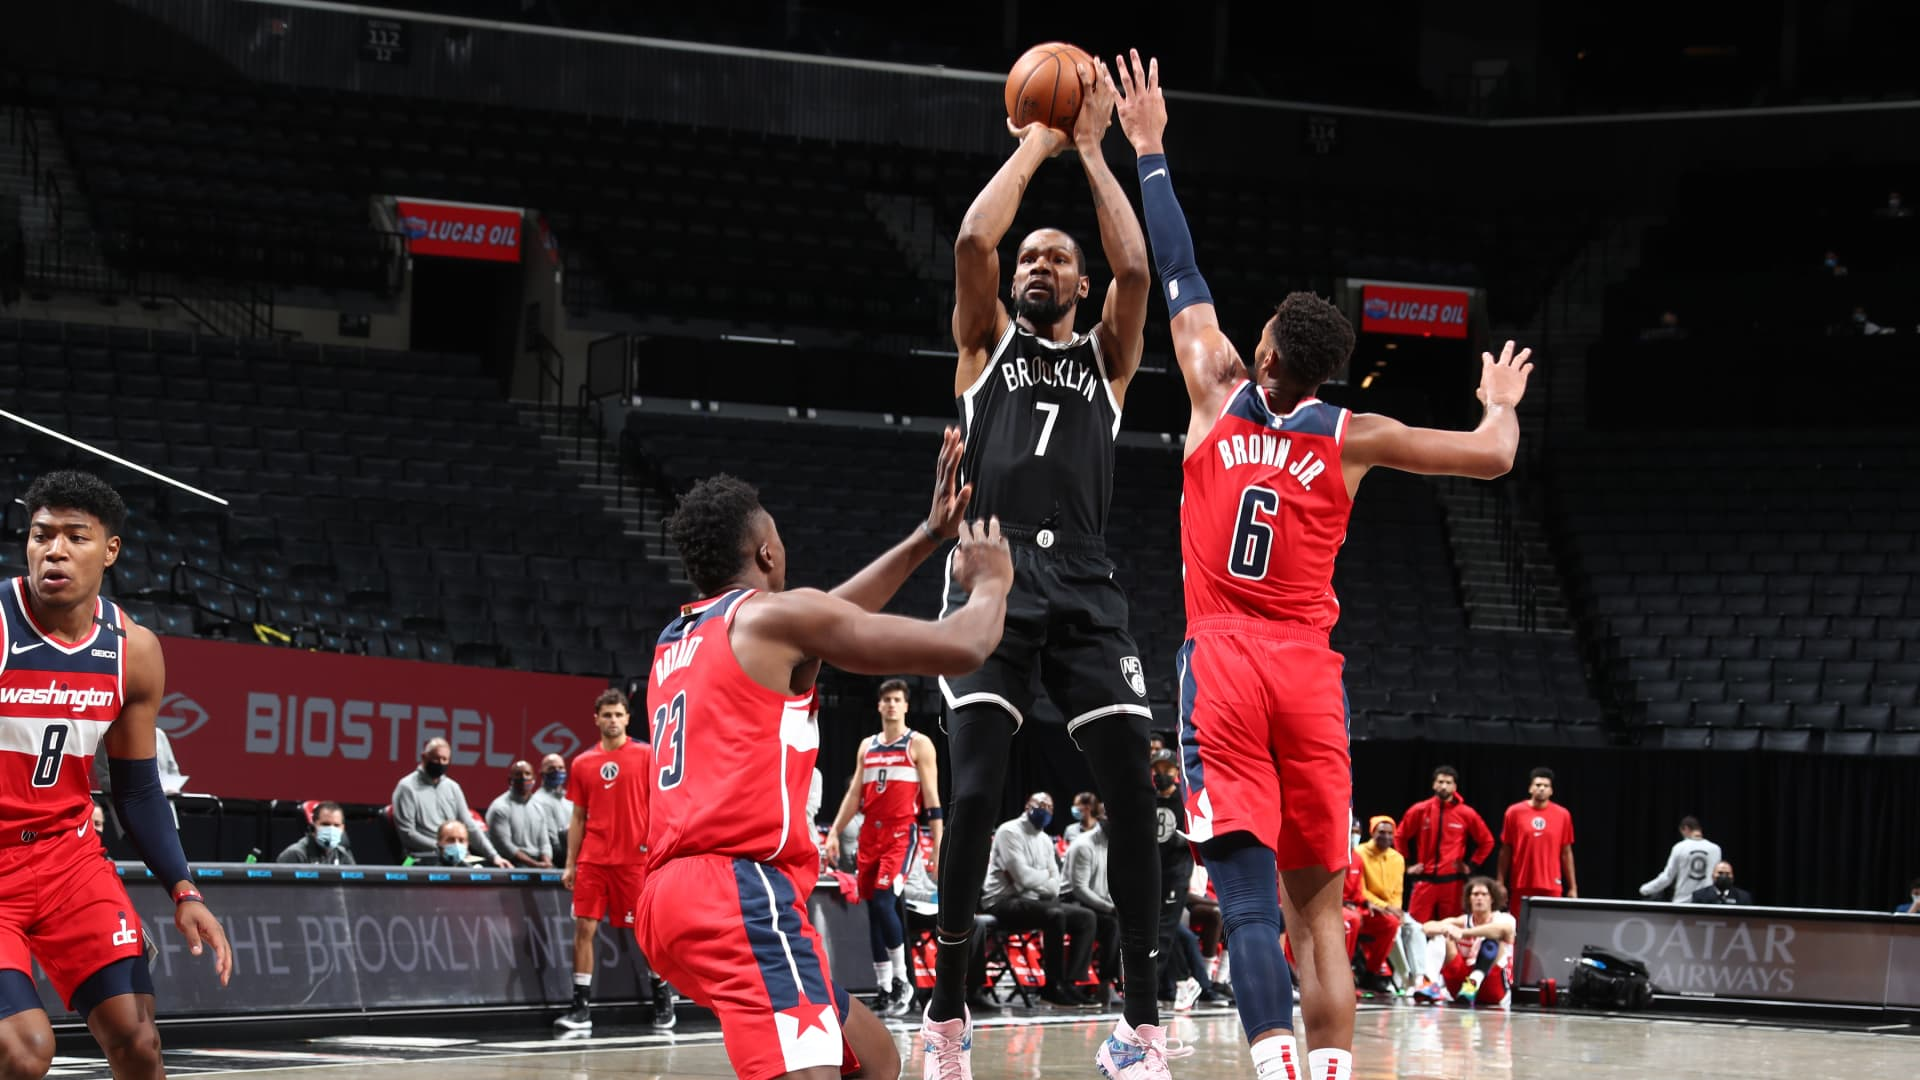 Kevin Durant #7 of the Brooklyn Nets shoots the ball against the Washington Wizards during a preseason game on December 13, 2020 at Barclays Center in Brooklyn, New York.